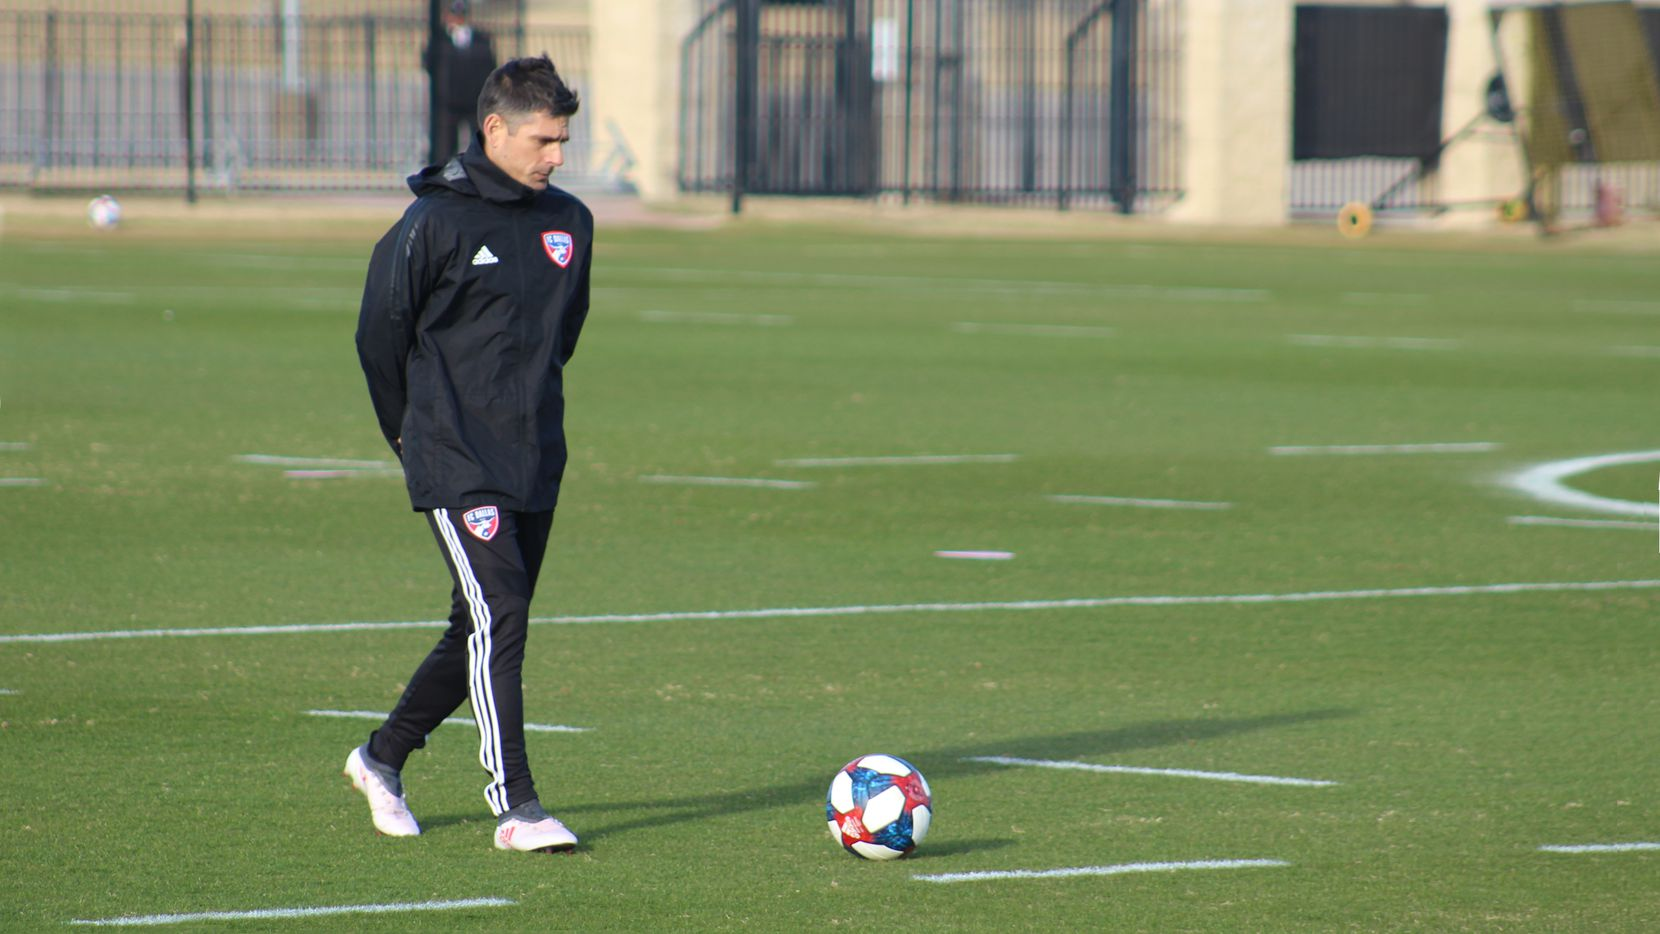 January 21, 2019 (Frisco, TX): Luchi Gonzalez paces the field during FC Dallas' opening practice of the 2019 Major League Soccer season.